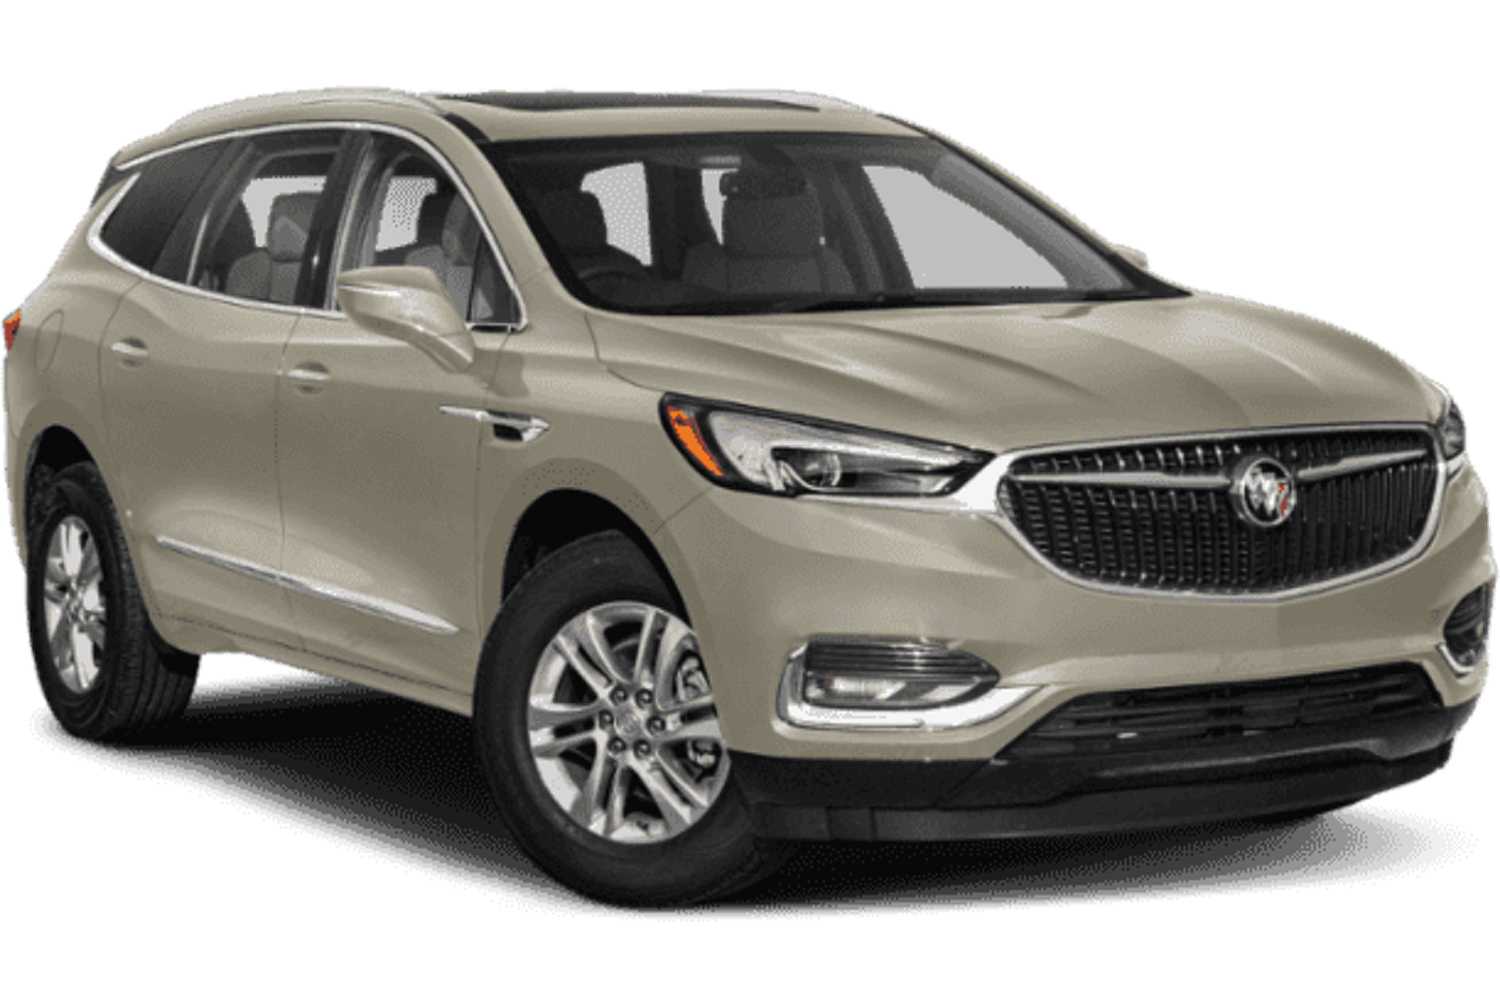 2020 Buick Enclave Gets New Champagne Gold Color | Gm Authority New 2021 Buick Enclave New Colors, Oil Type, Options